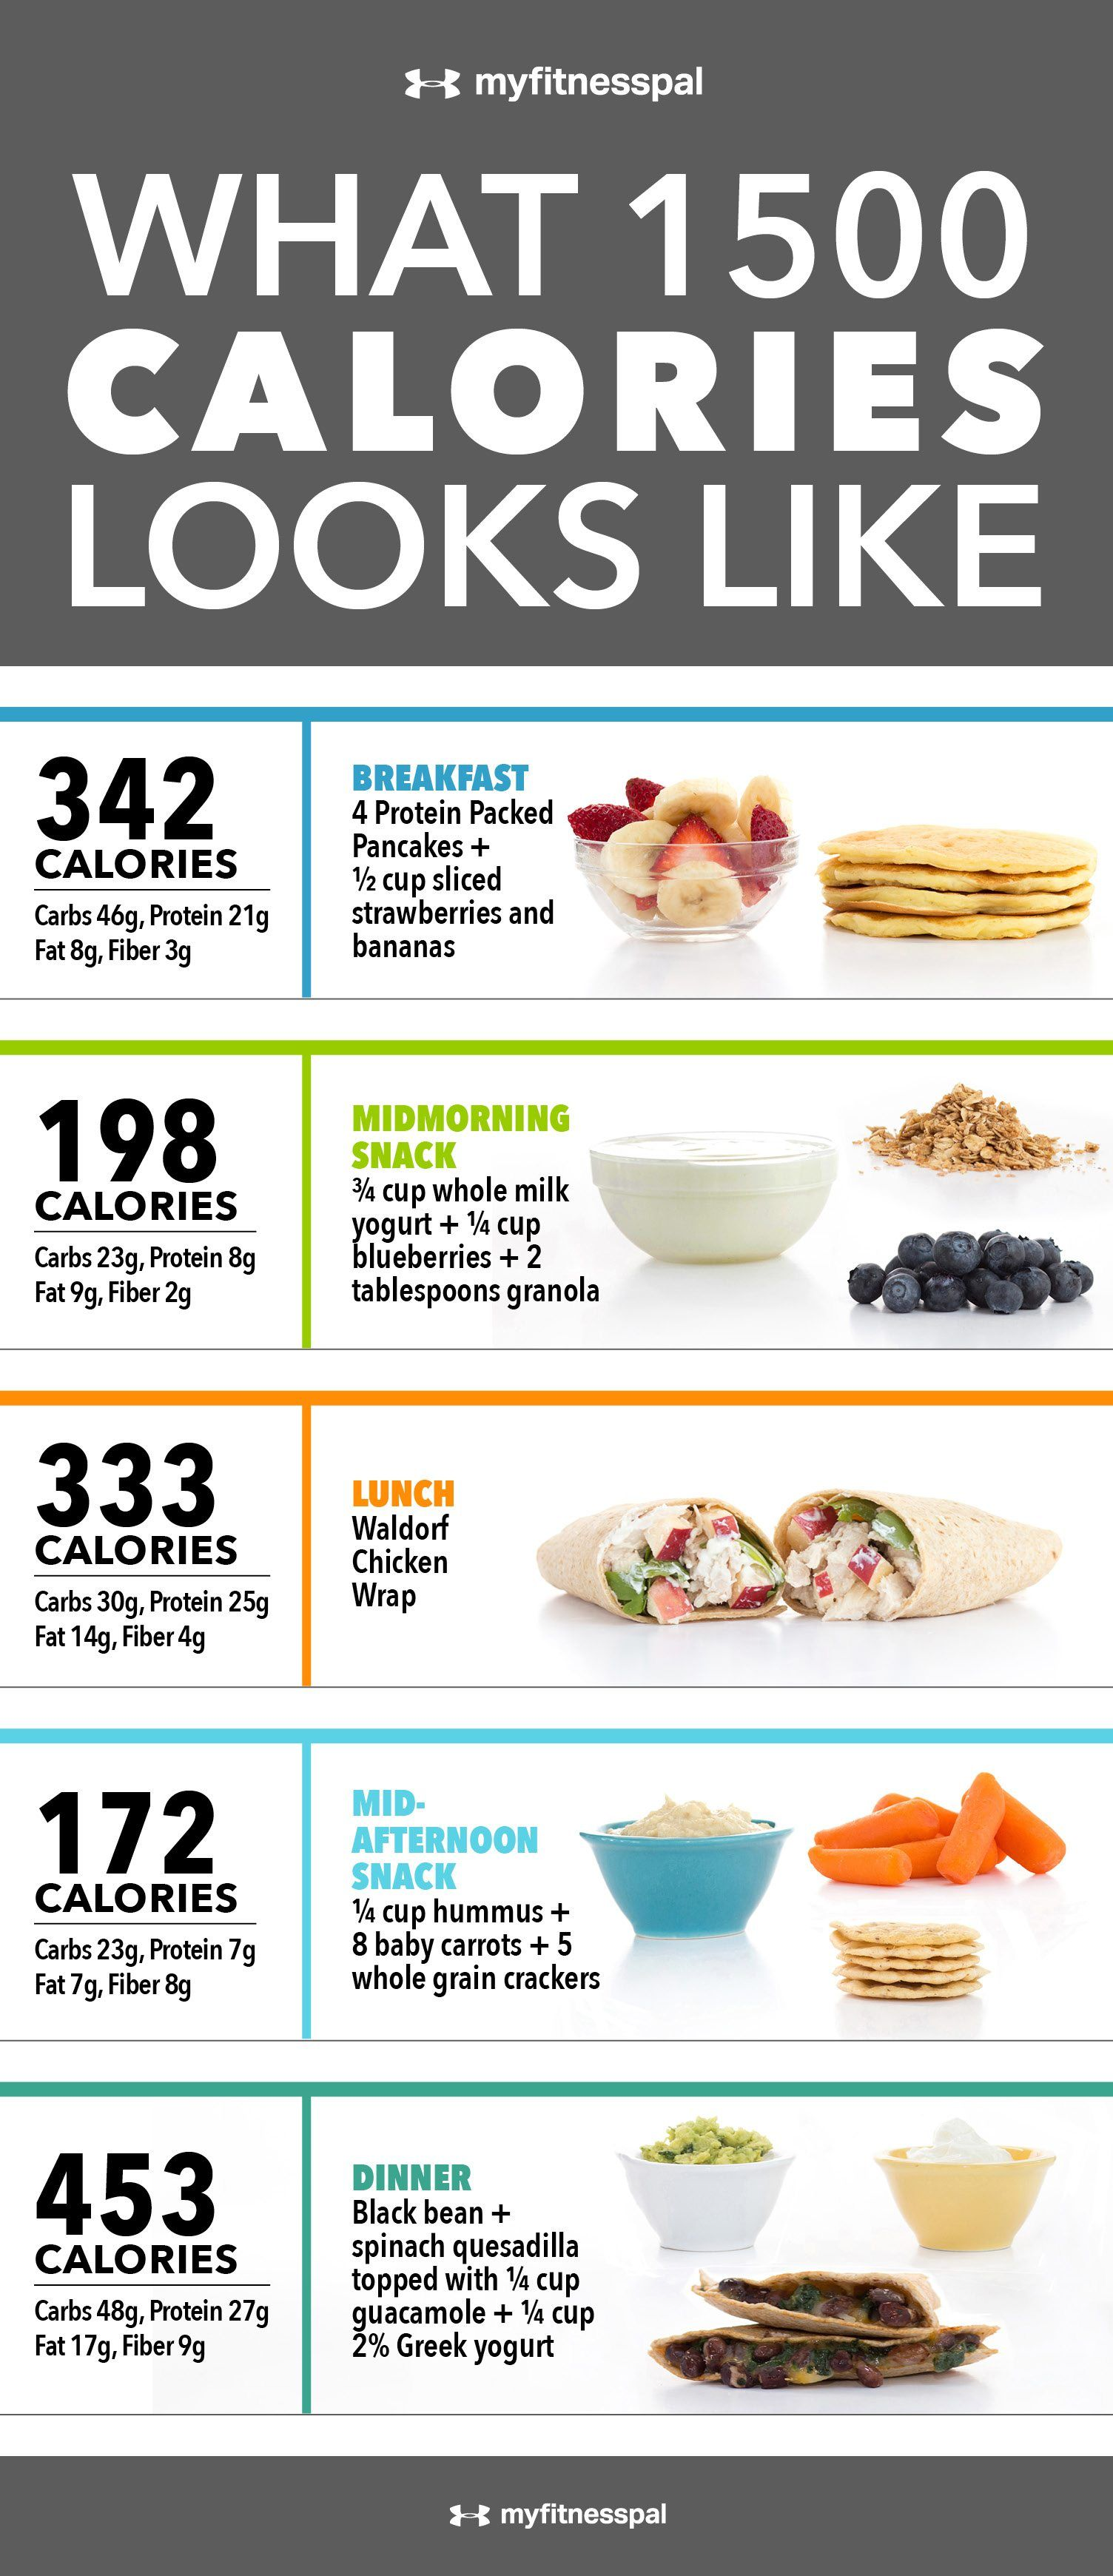 Sticking To A 1500 Calorie Diet? Take A Look At Some Of The Tasty Foods